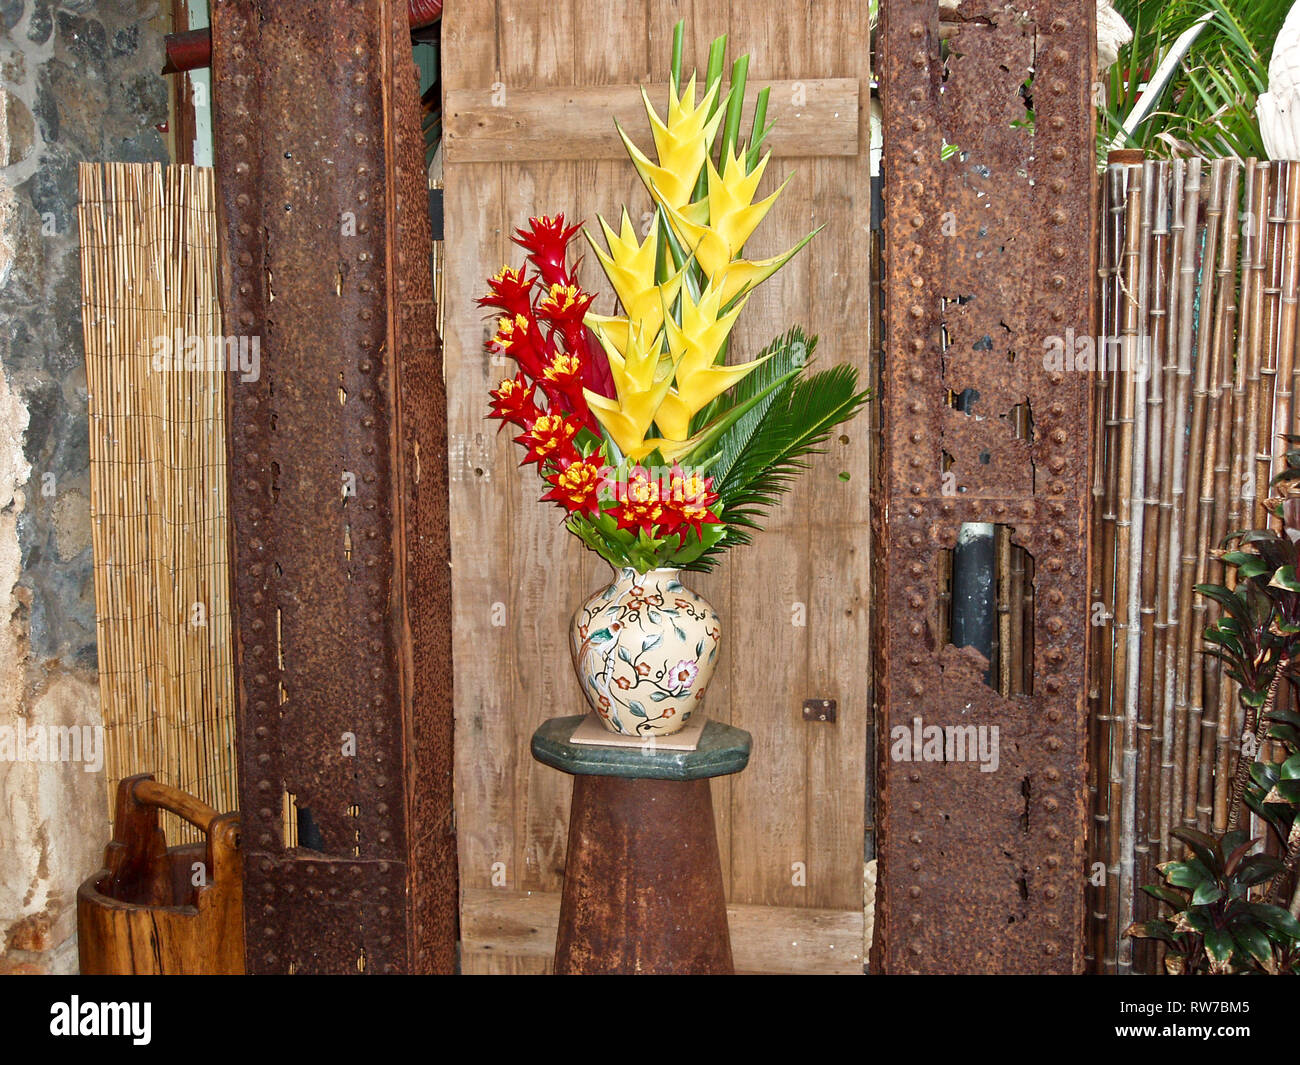 Lobster-claws blooms arrangement - Stock Image